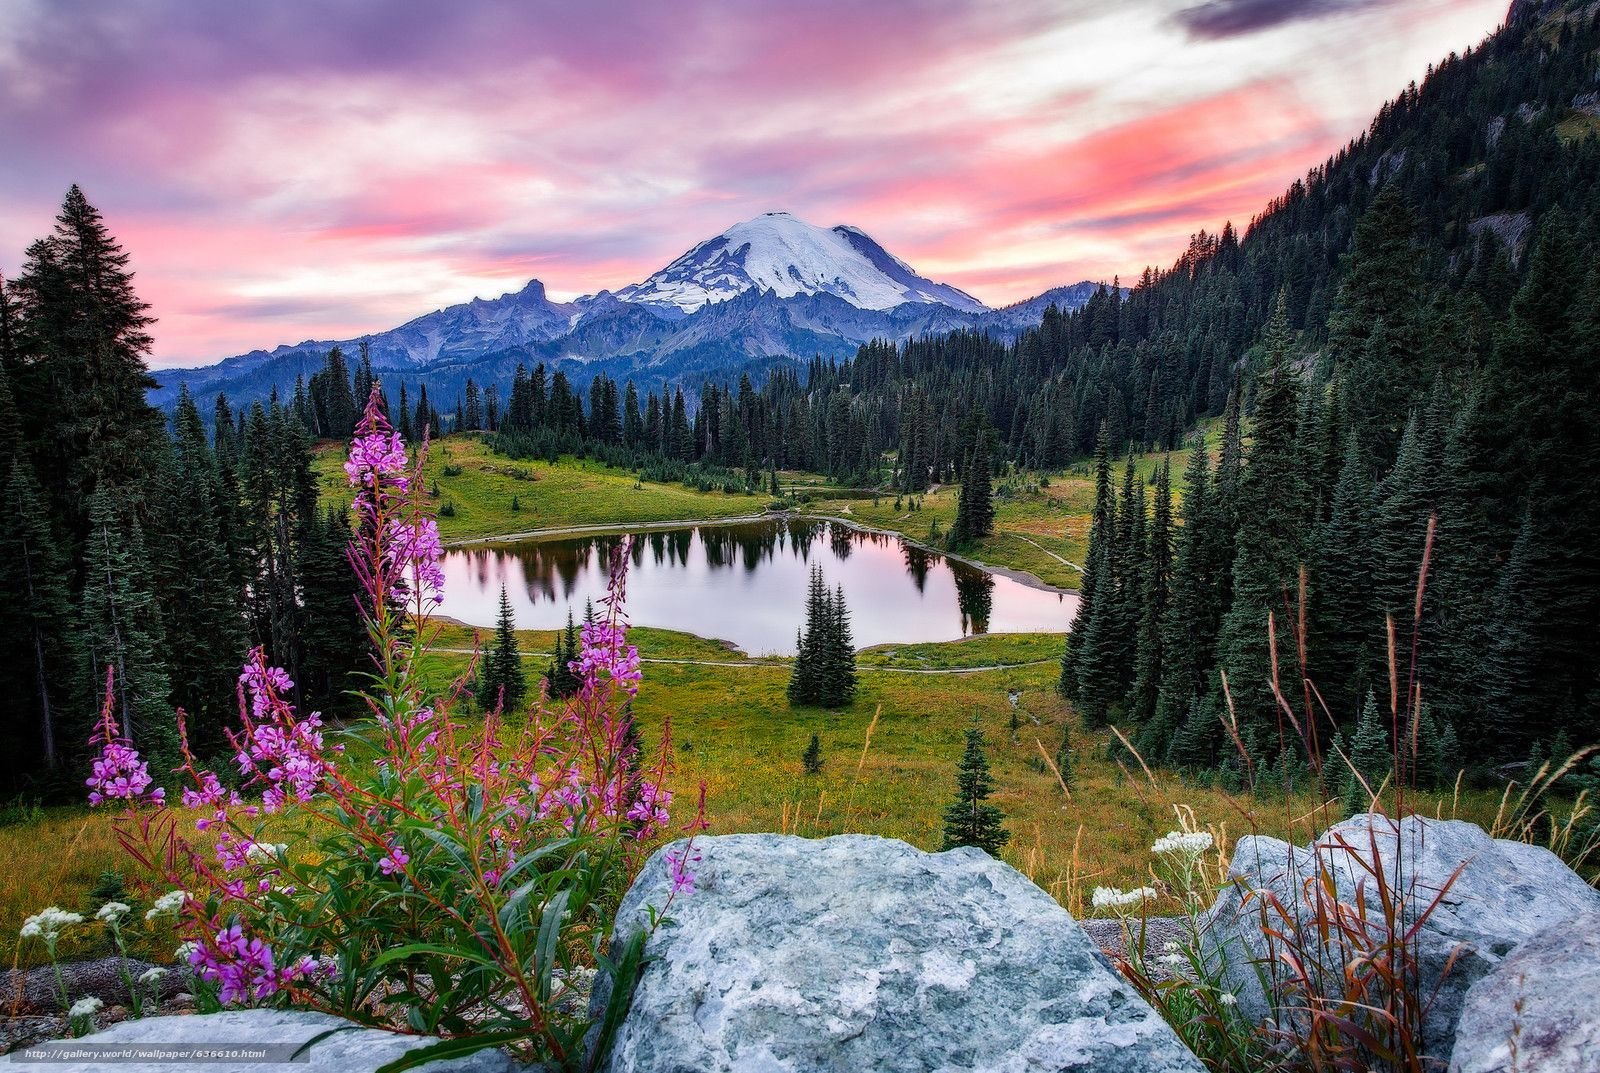 Mount Rainer National Park - Located in Washington Mount Rainer is a stratovolcano. The park is surrounded by meadows, glaciers, waterfalls and forests.